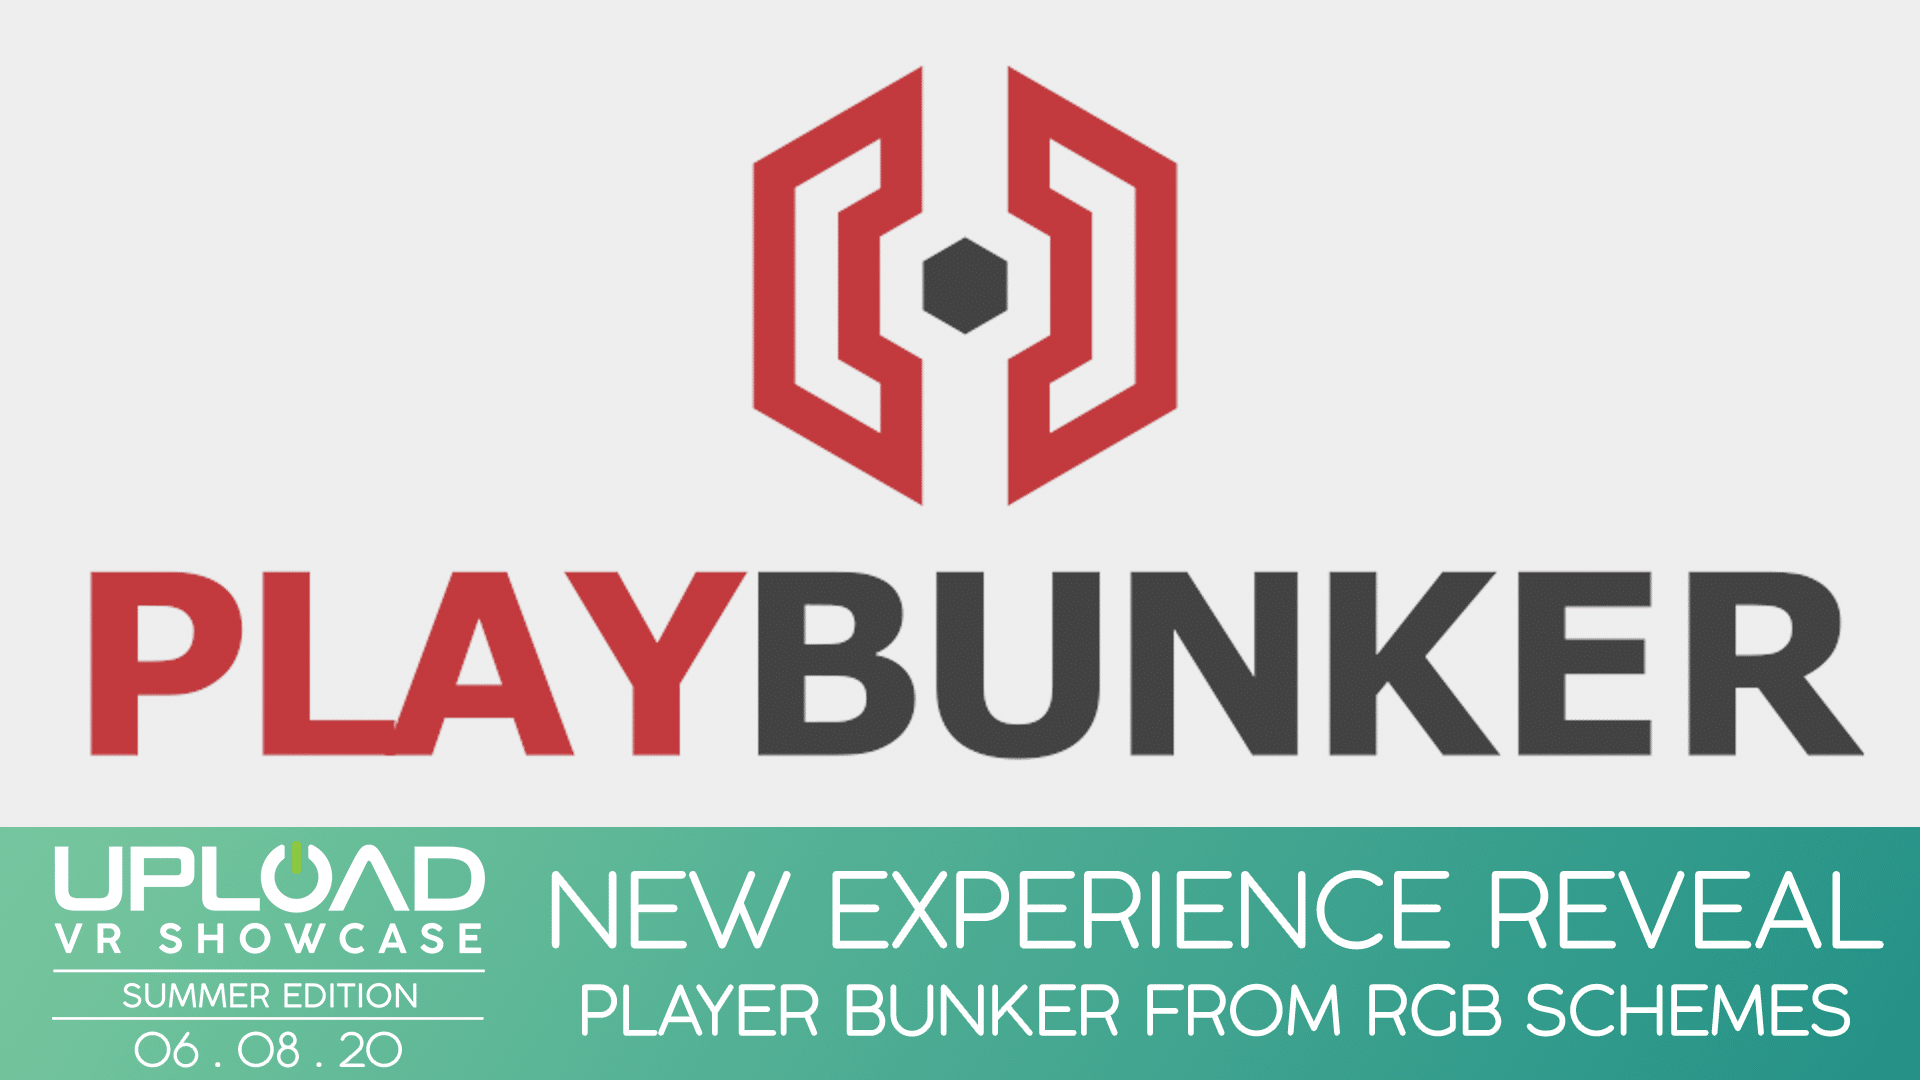 New Social VR App Play Bunker To Be Revealed At The Upload VR Showcase: Summer Edition